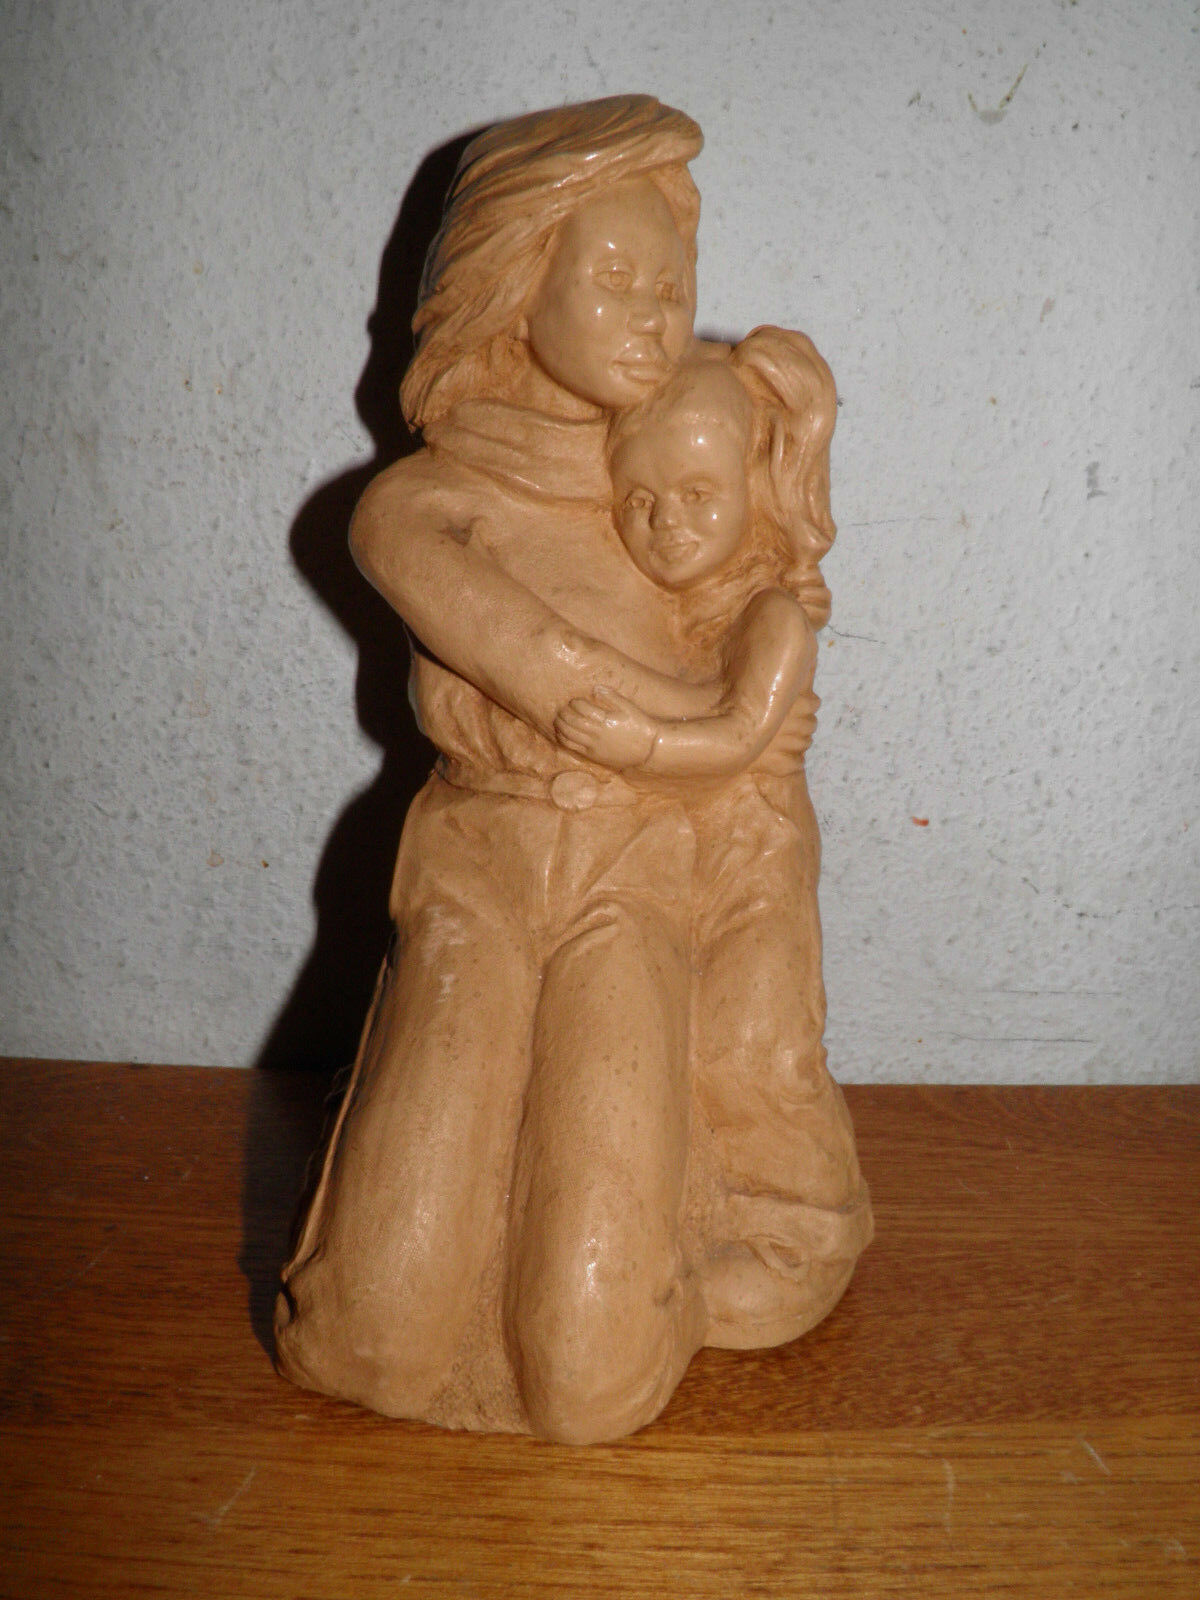 Sculpture Mother Daughter 1983 Retro Signed REW 8 Priced To Sell 20.00 OFF  - $38.84